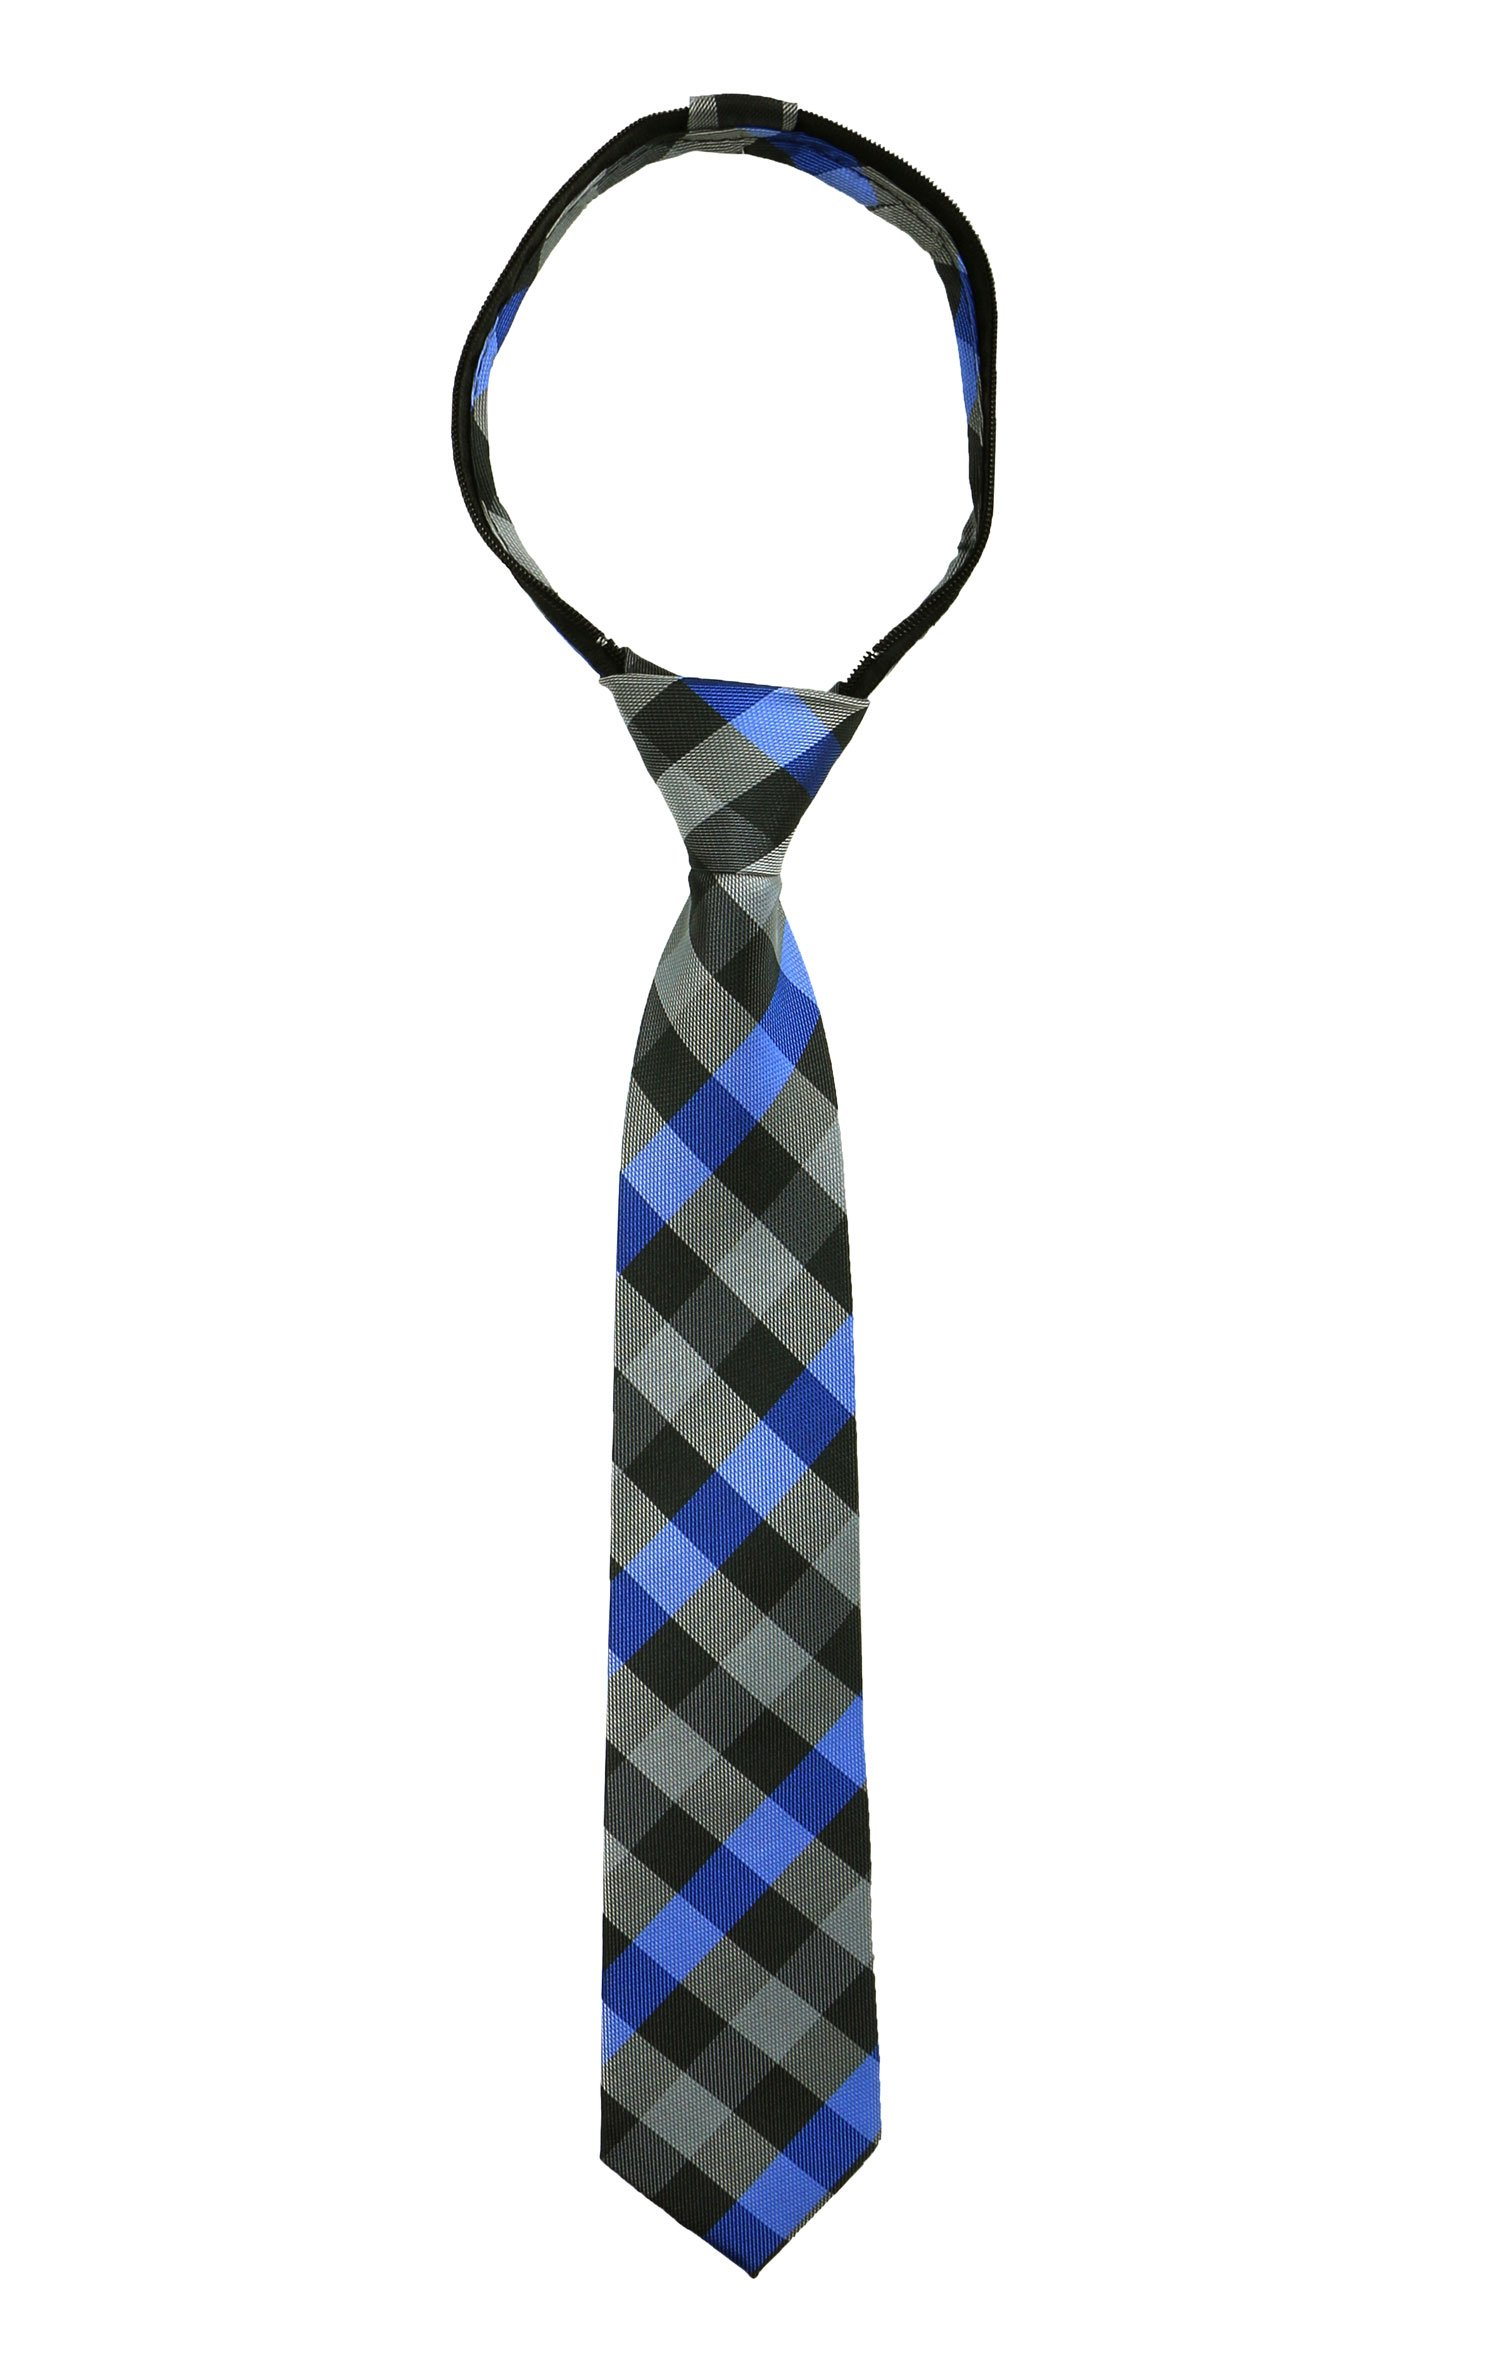 Spring Notion Boys' Pre-tied Woven Zipper Tie Large Checkered Blue